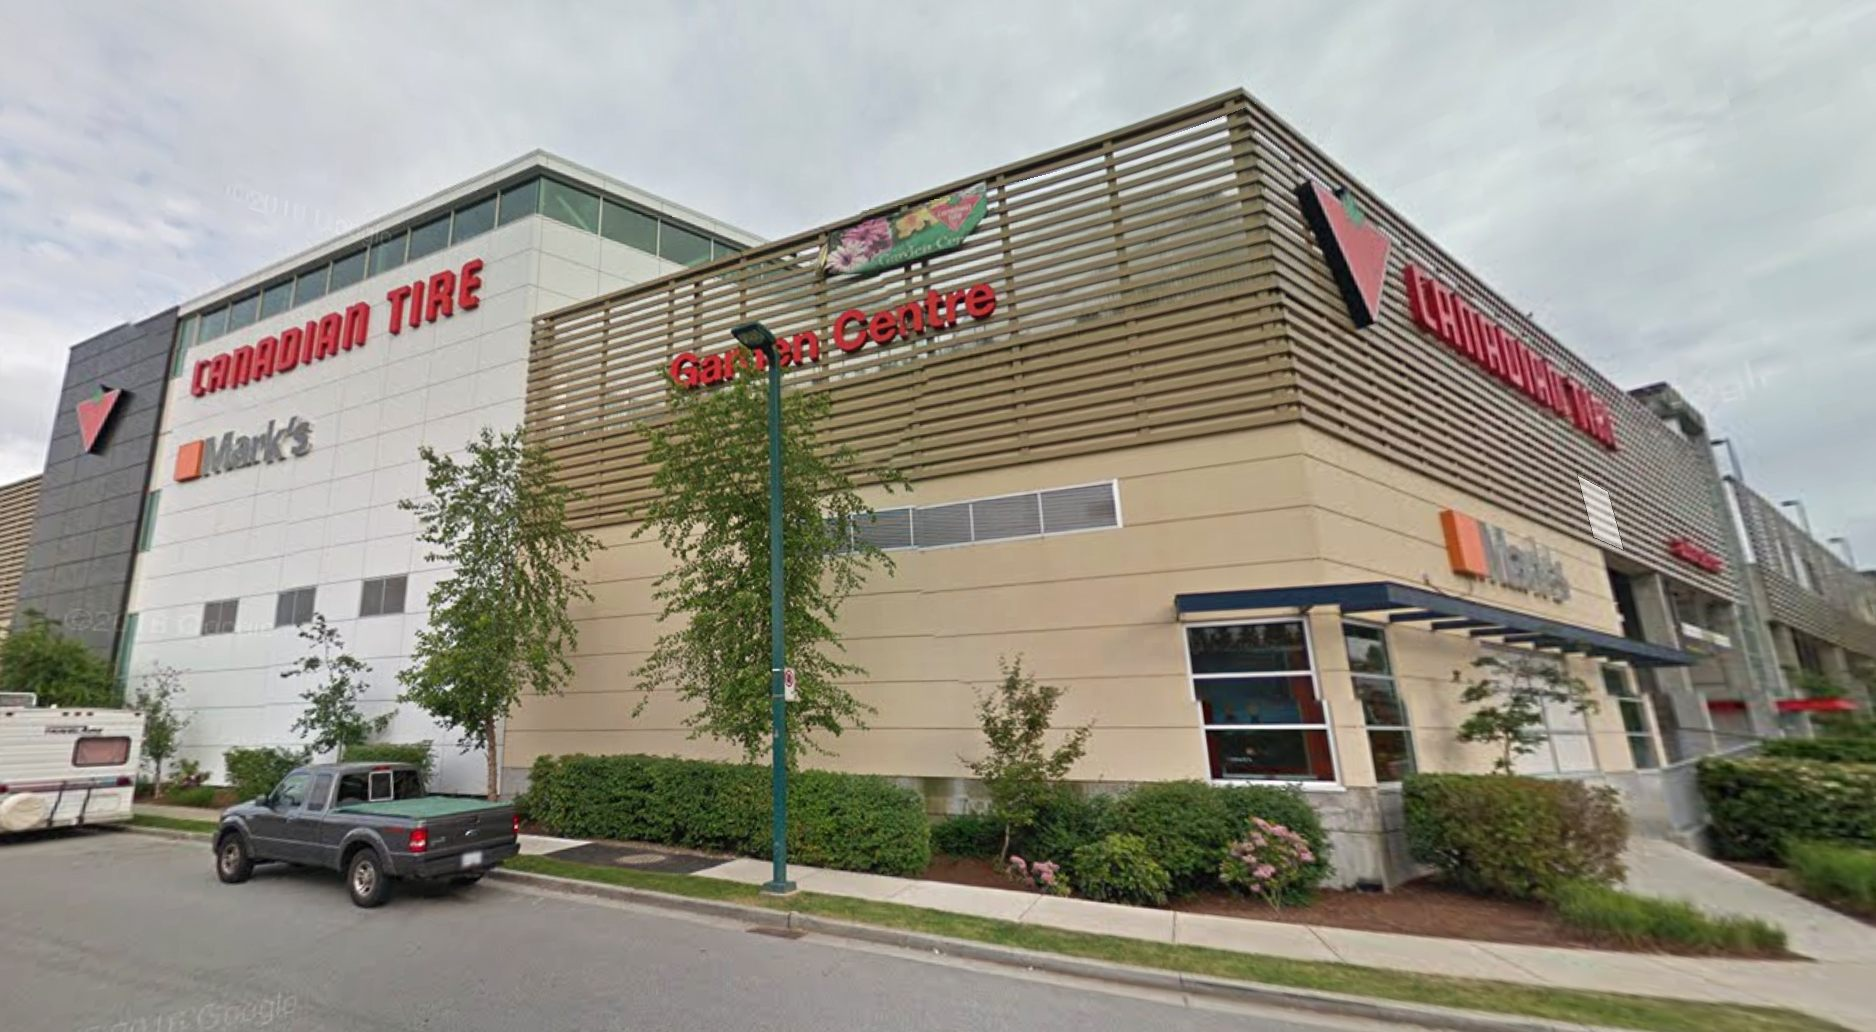 Canadian tire near rupert st and grandview highway vancouver google maps